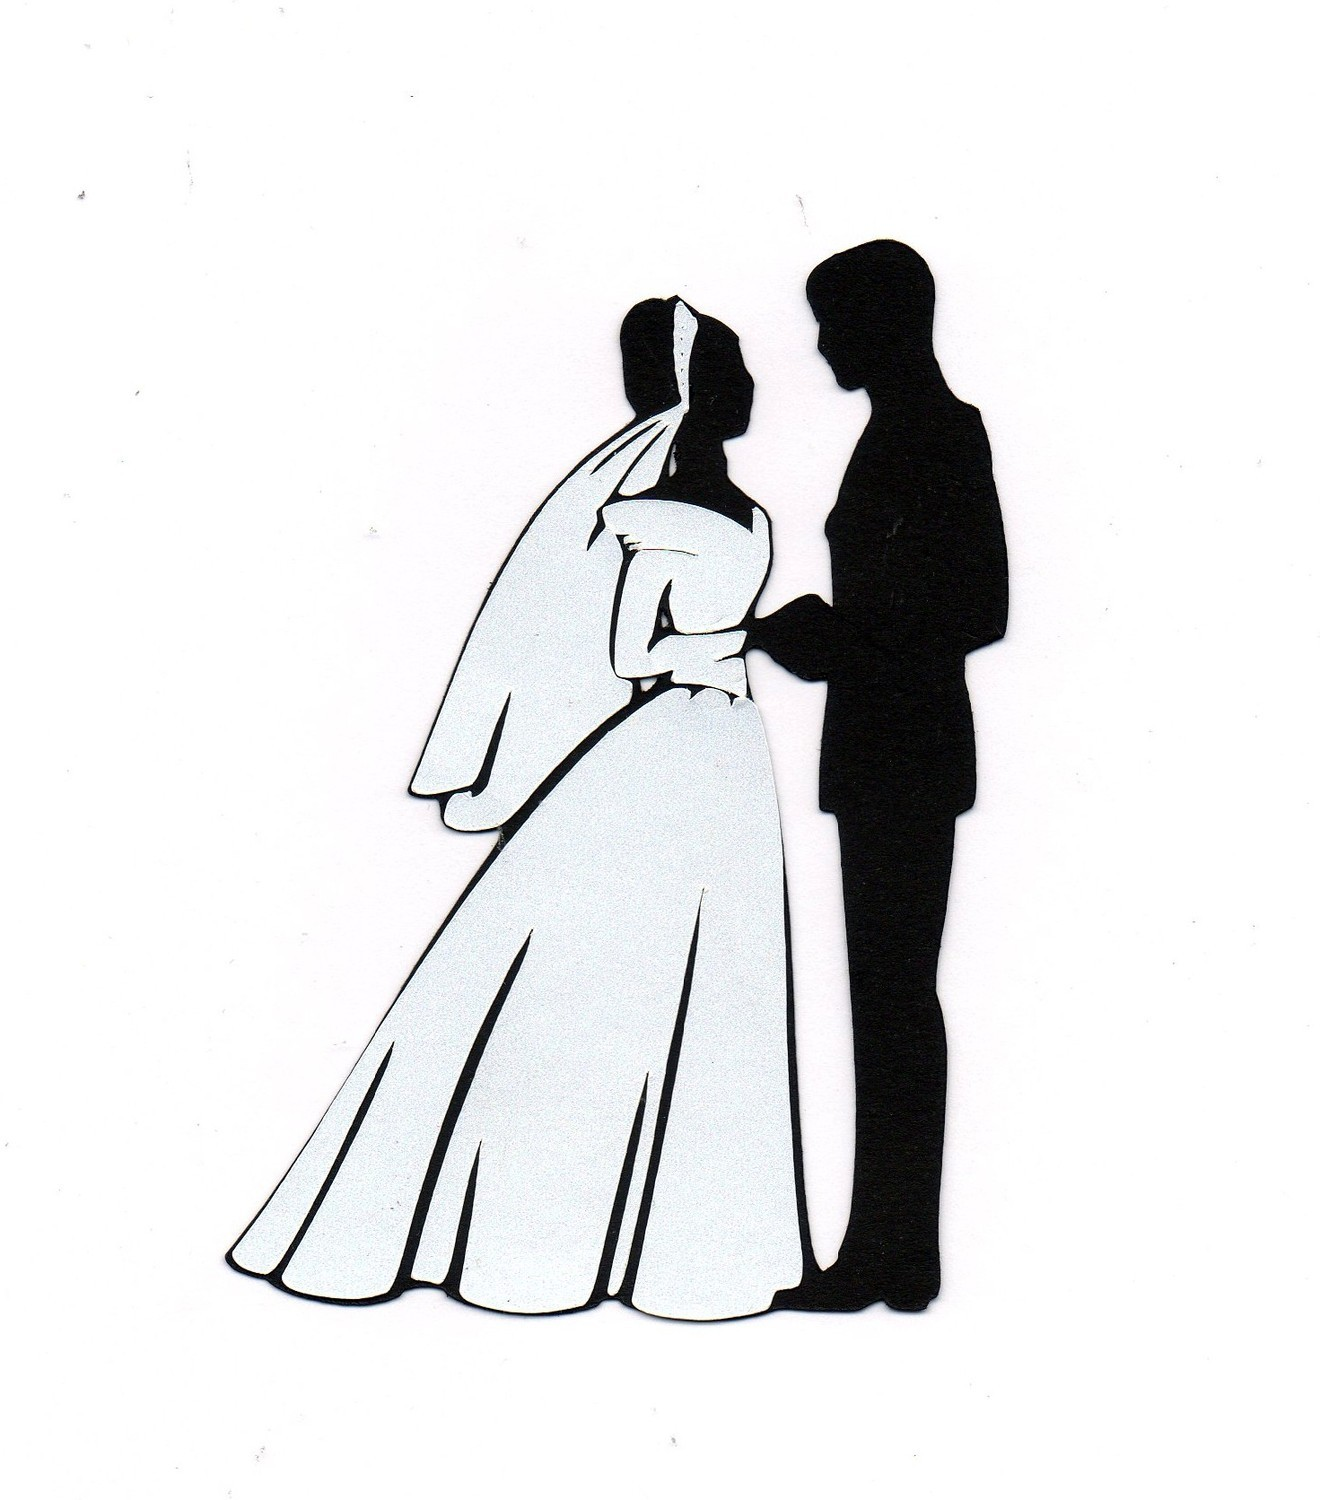 Bride and groom clipart 7 bride and groom silhouette image 2.